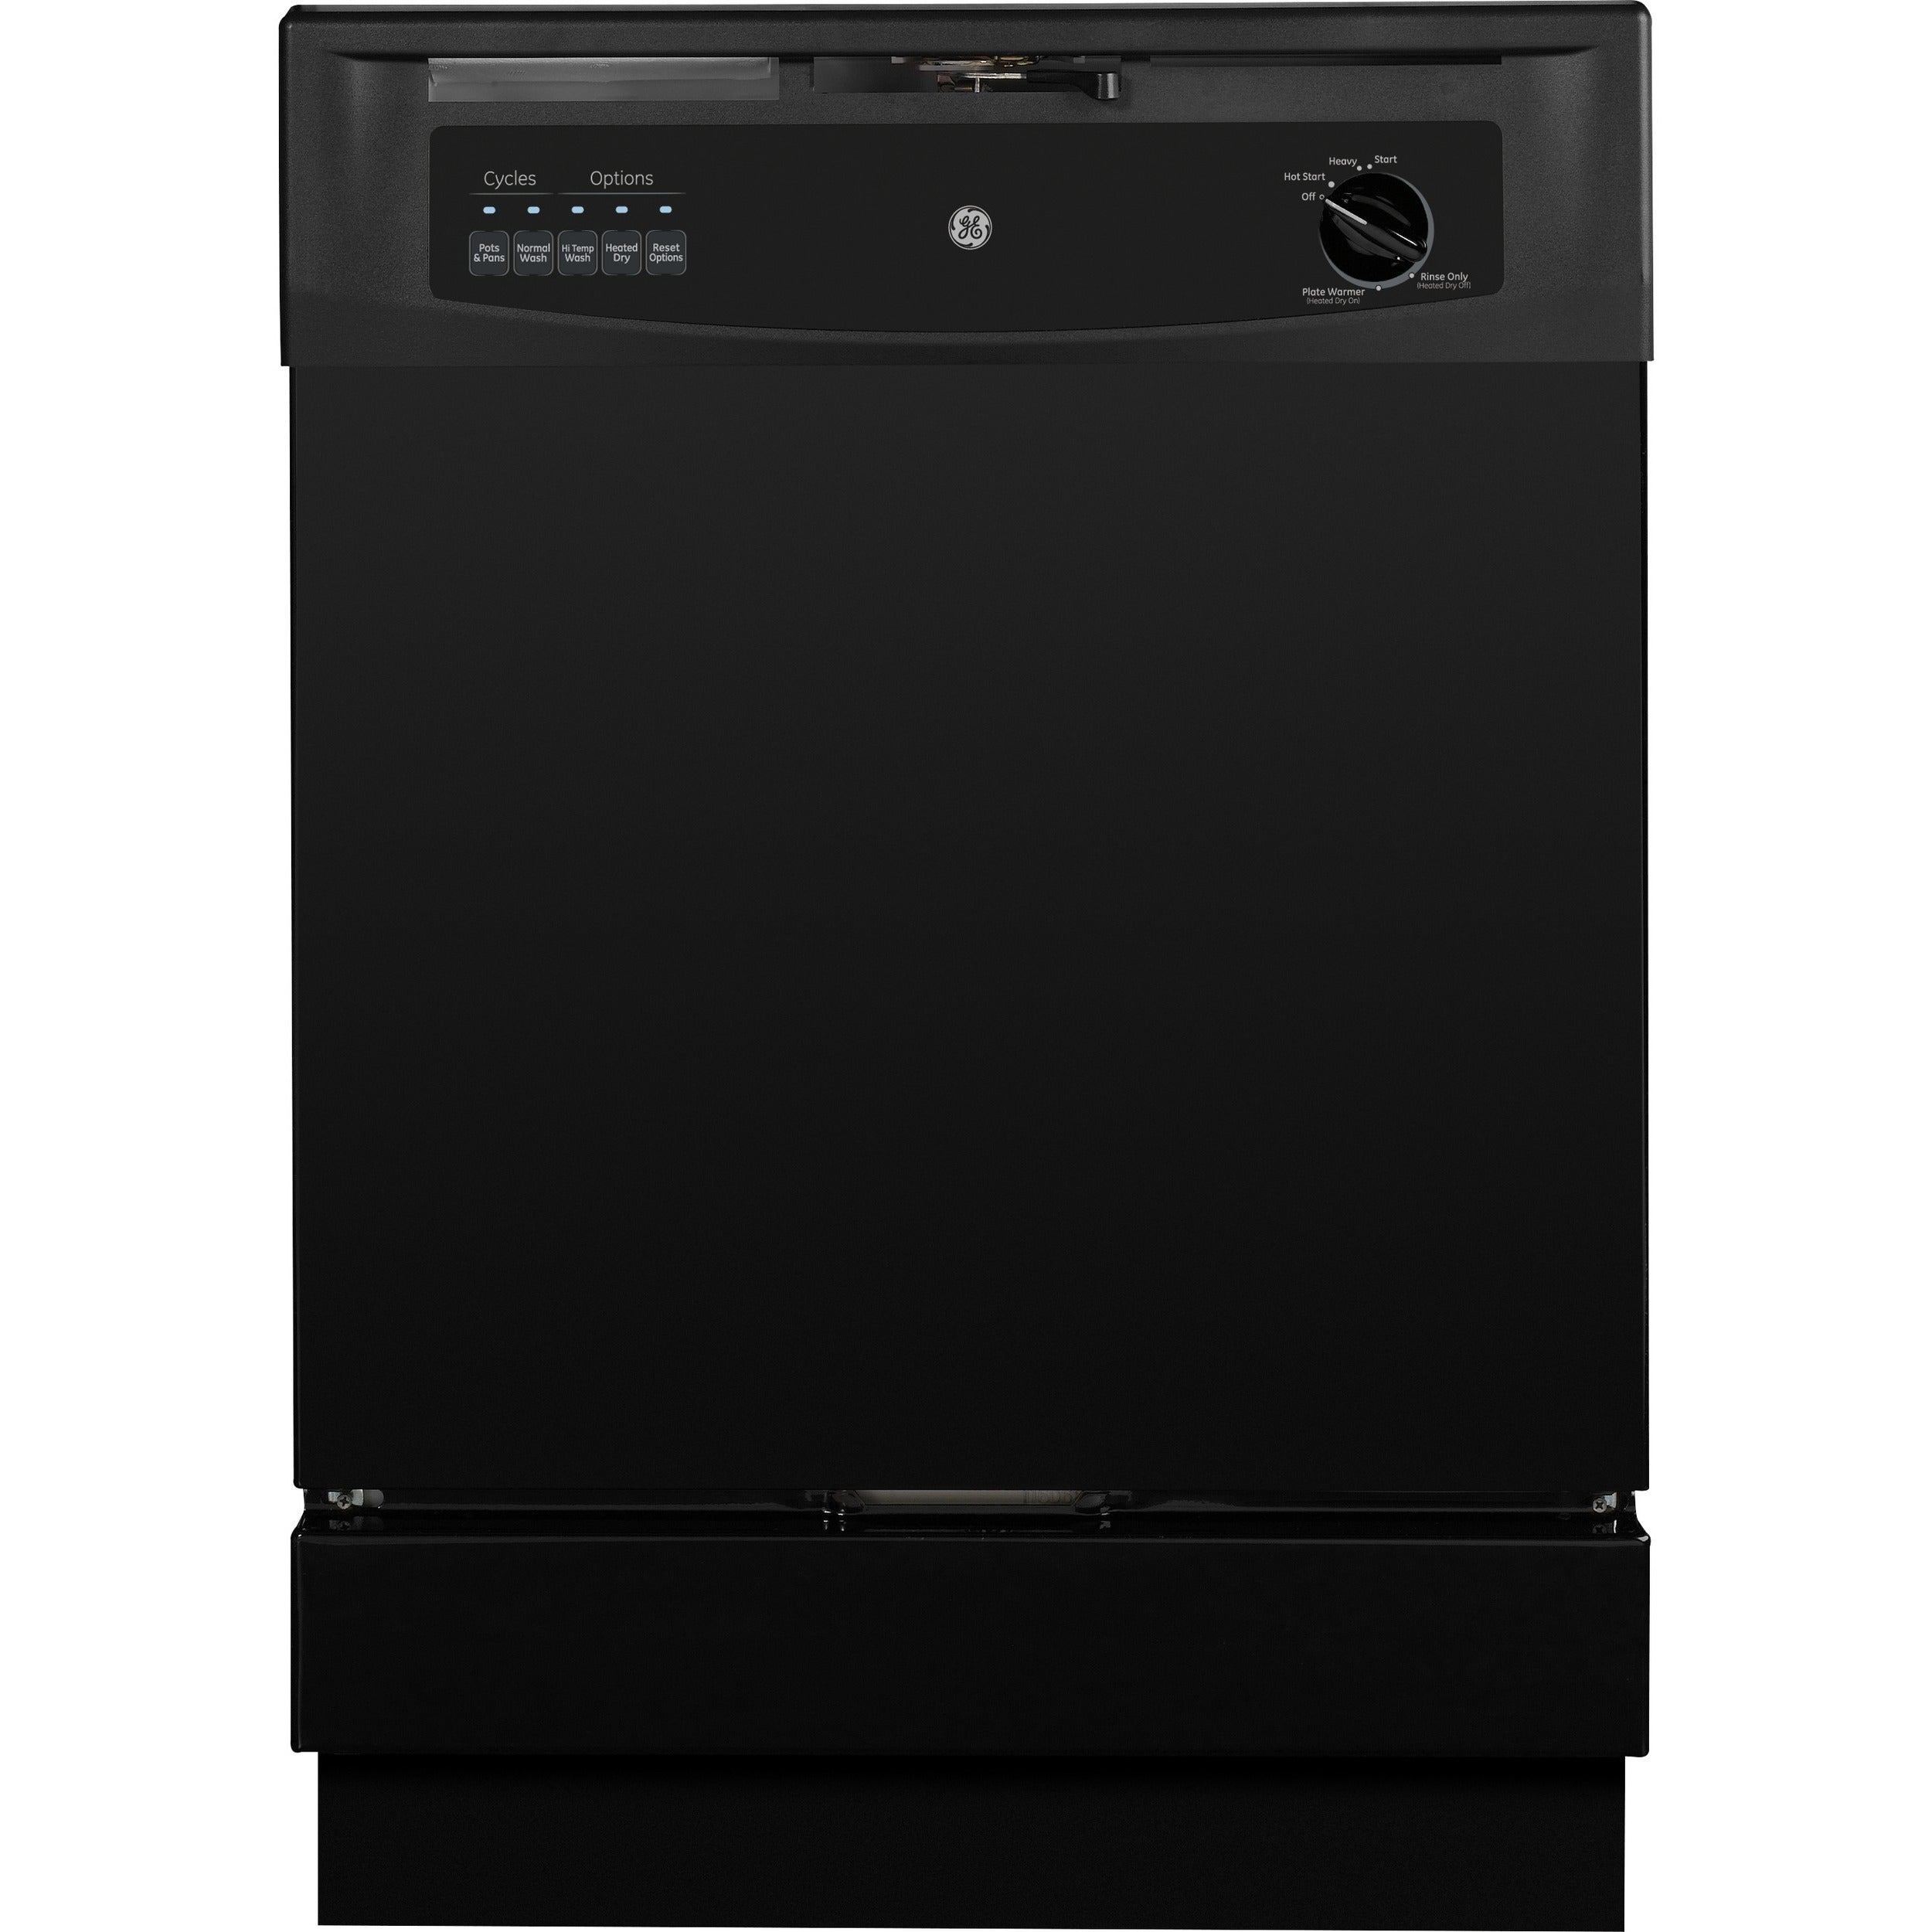 GE Built-In Dishwasher with Power Cord Black